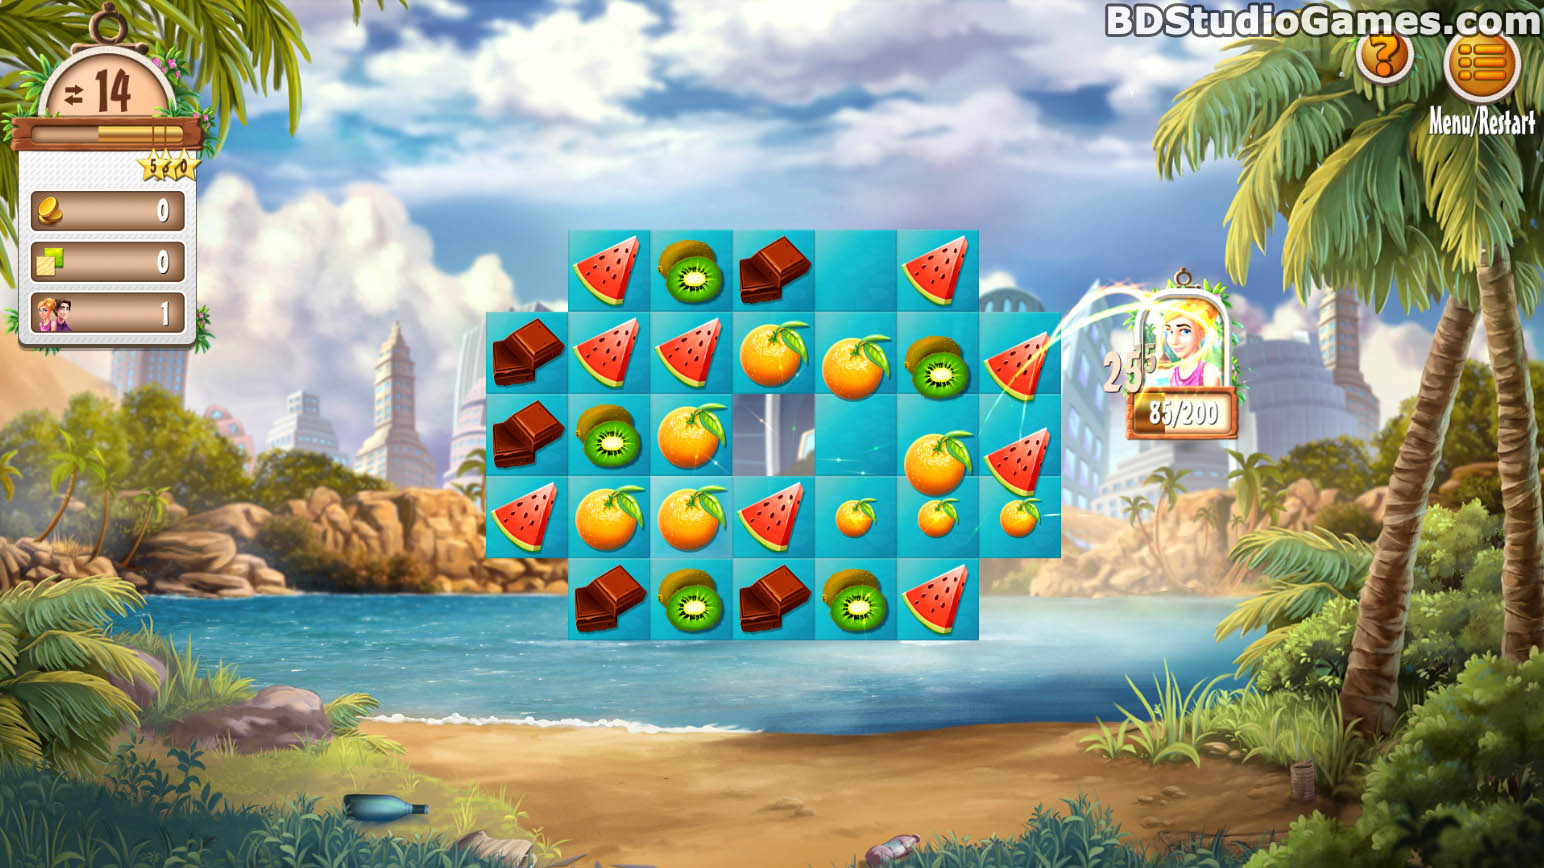 5 Star Miami Resort Trial Version Free Download Full Version Buy Now Screenshots 01